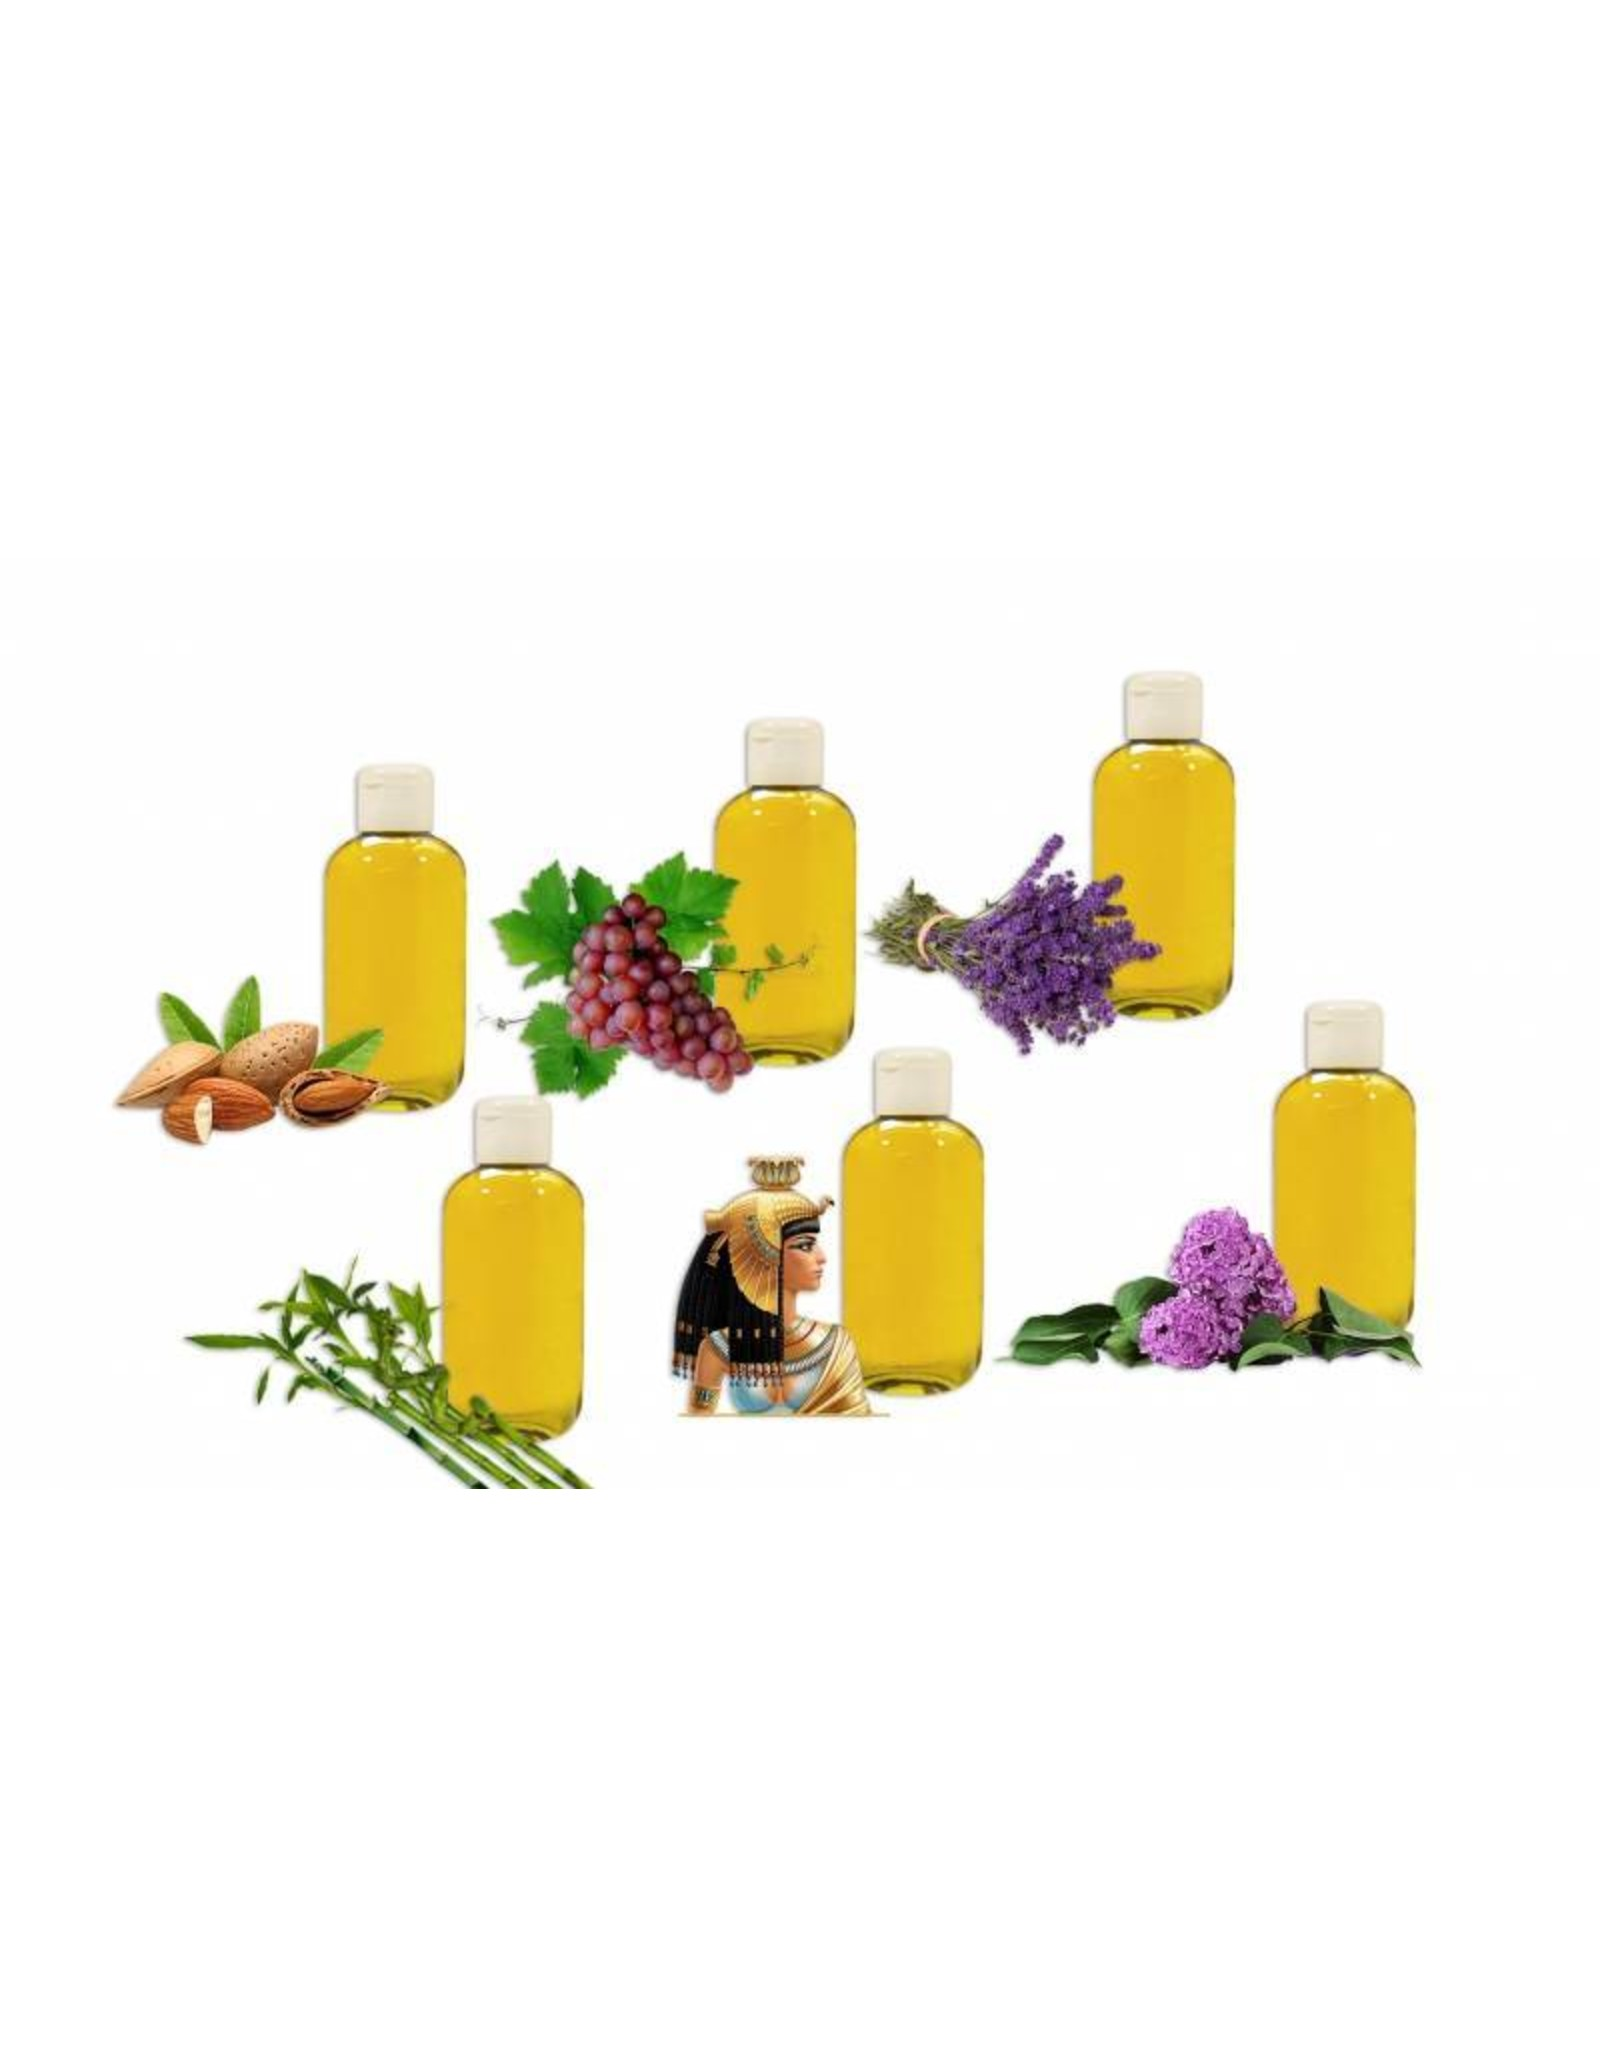 DeOliebaron Lavendel massage olie 500 ml